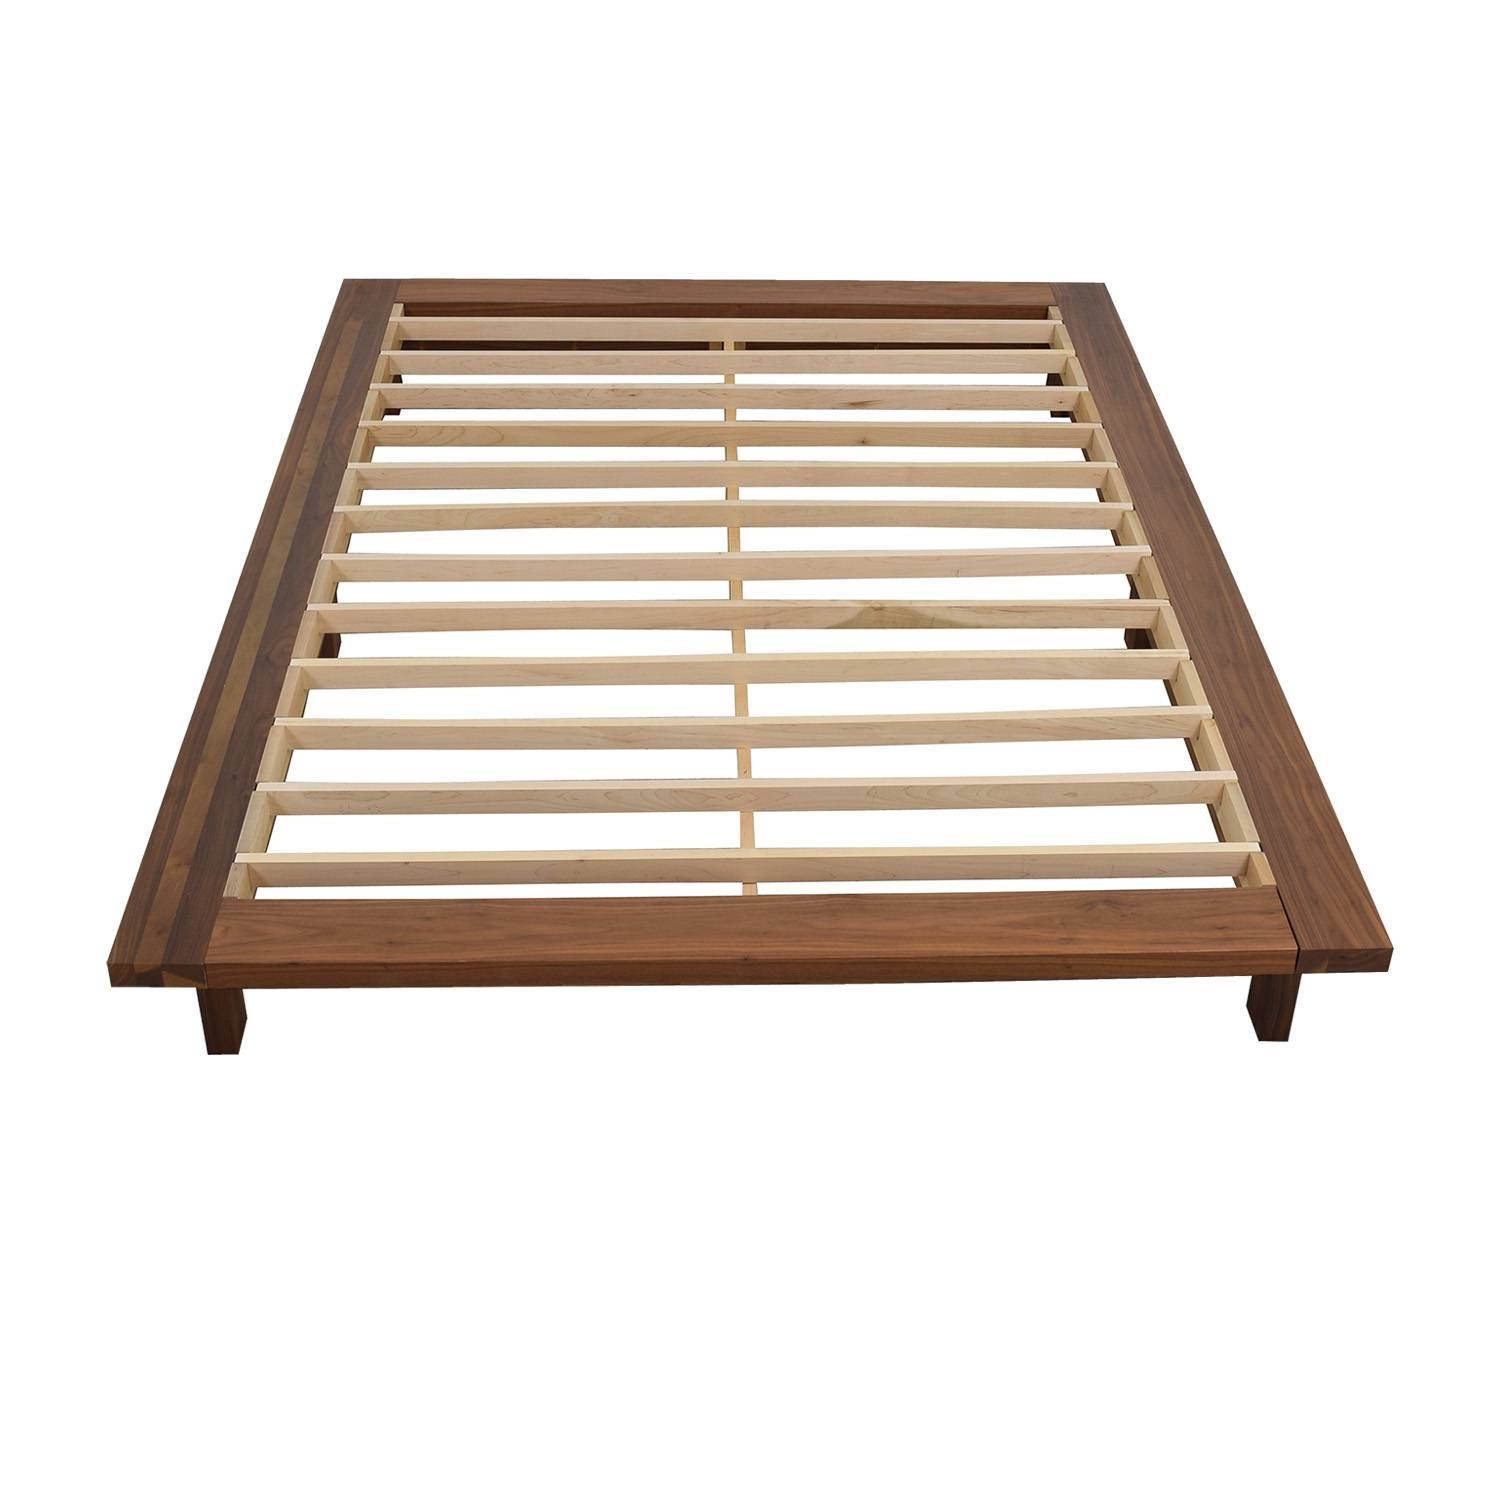 Bed Frames: Used Bed Frames For Sale For Most Recent Crate Barrel Coastal Wall Art (View 11 of 20)